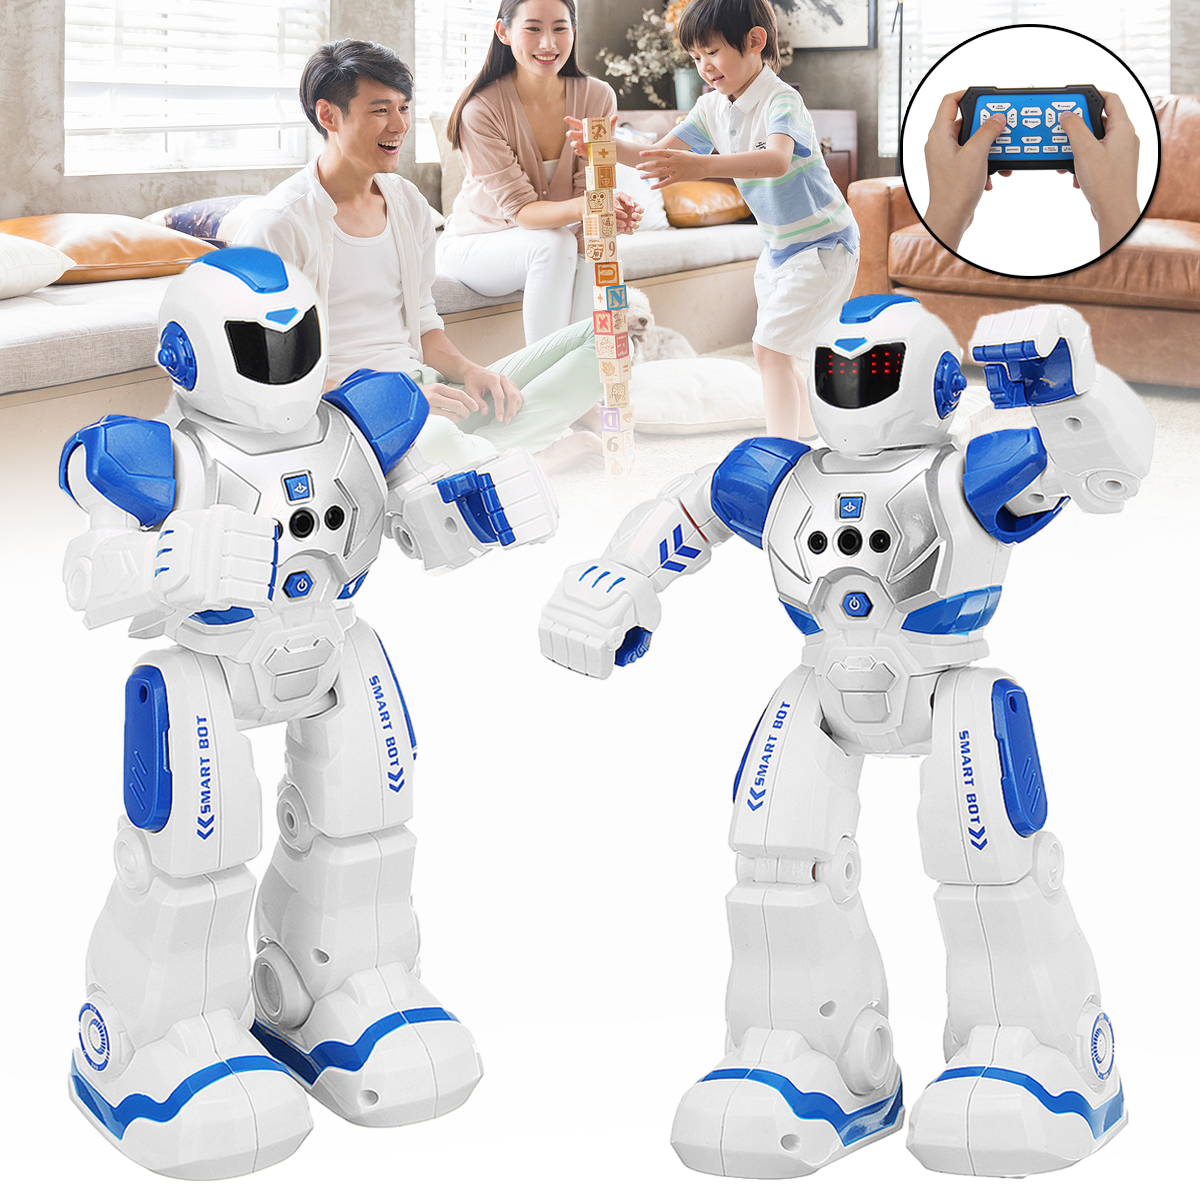 RC Music Dance Robot Toy Remote Control Gesture Robot Smart Action Infra-red Interactive Toy For Kid